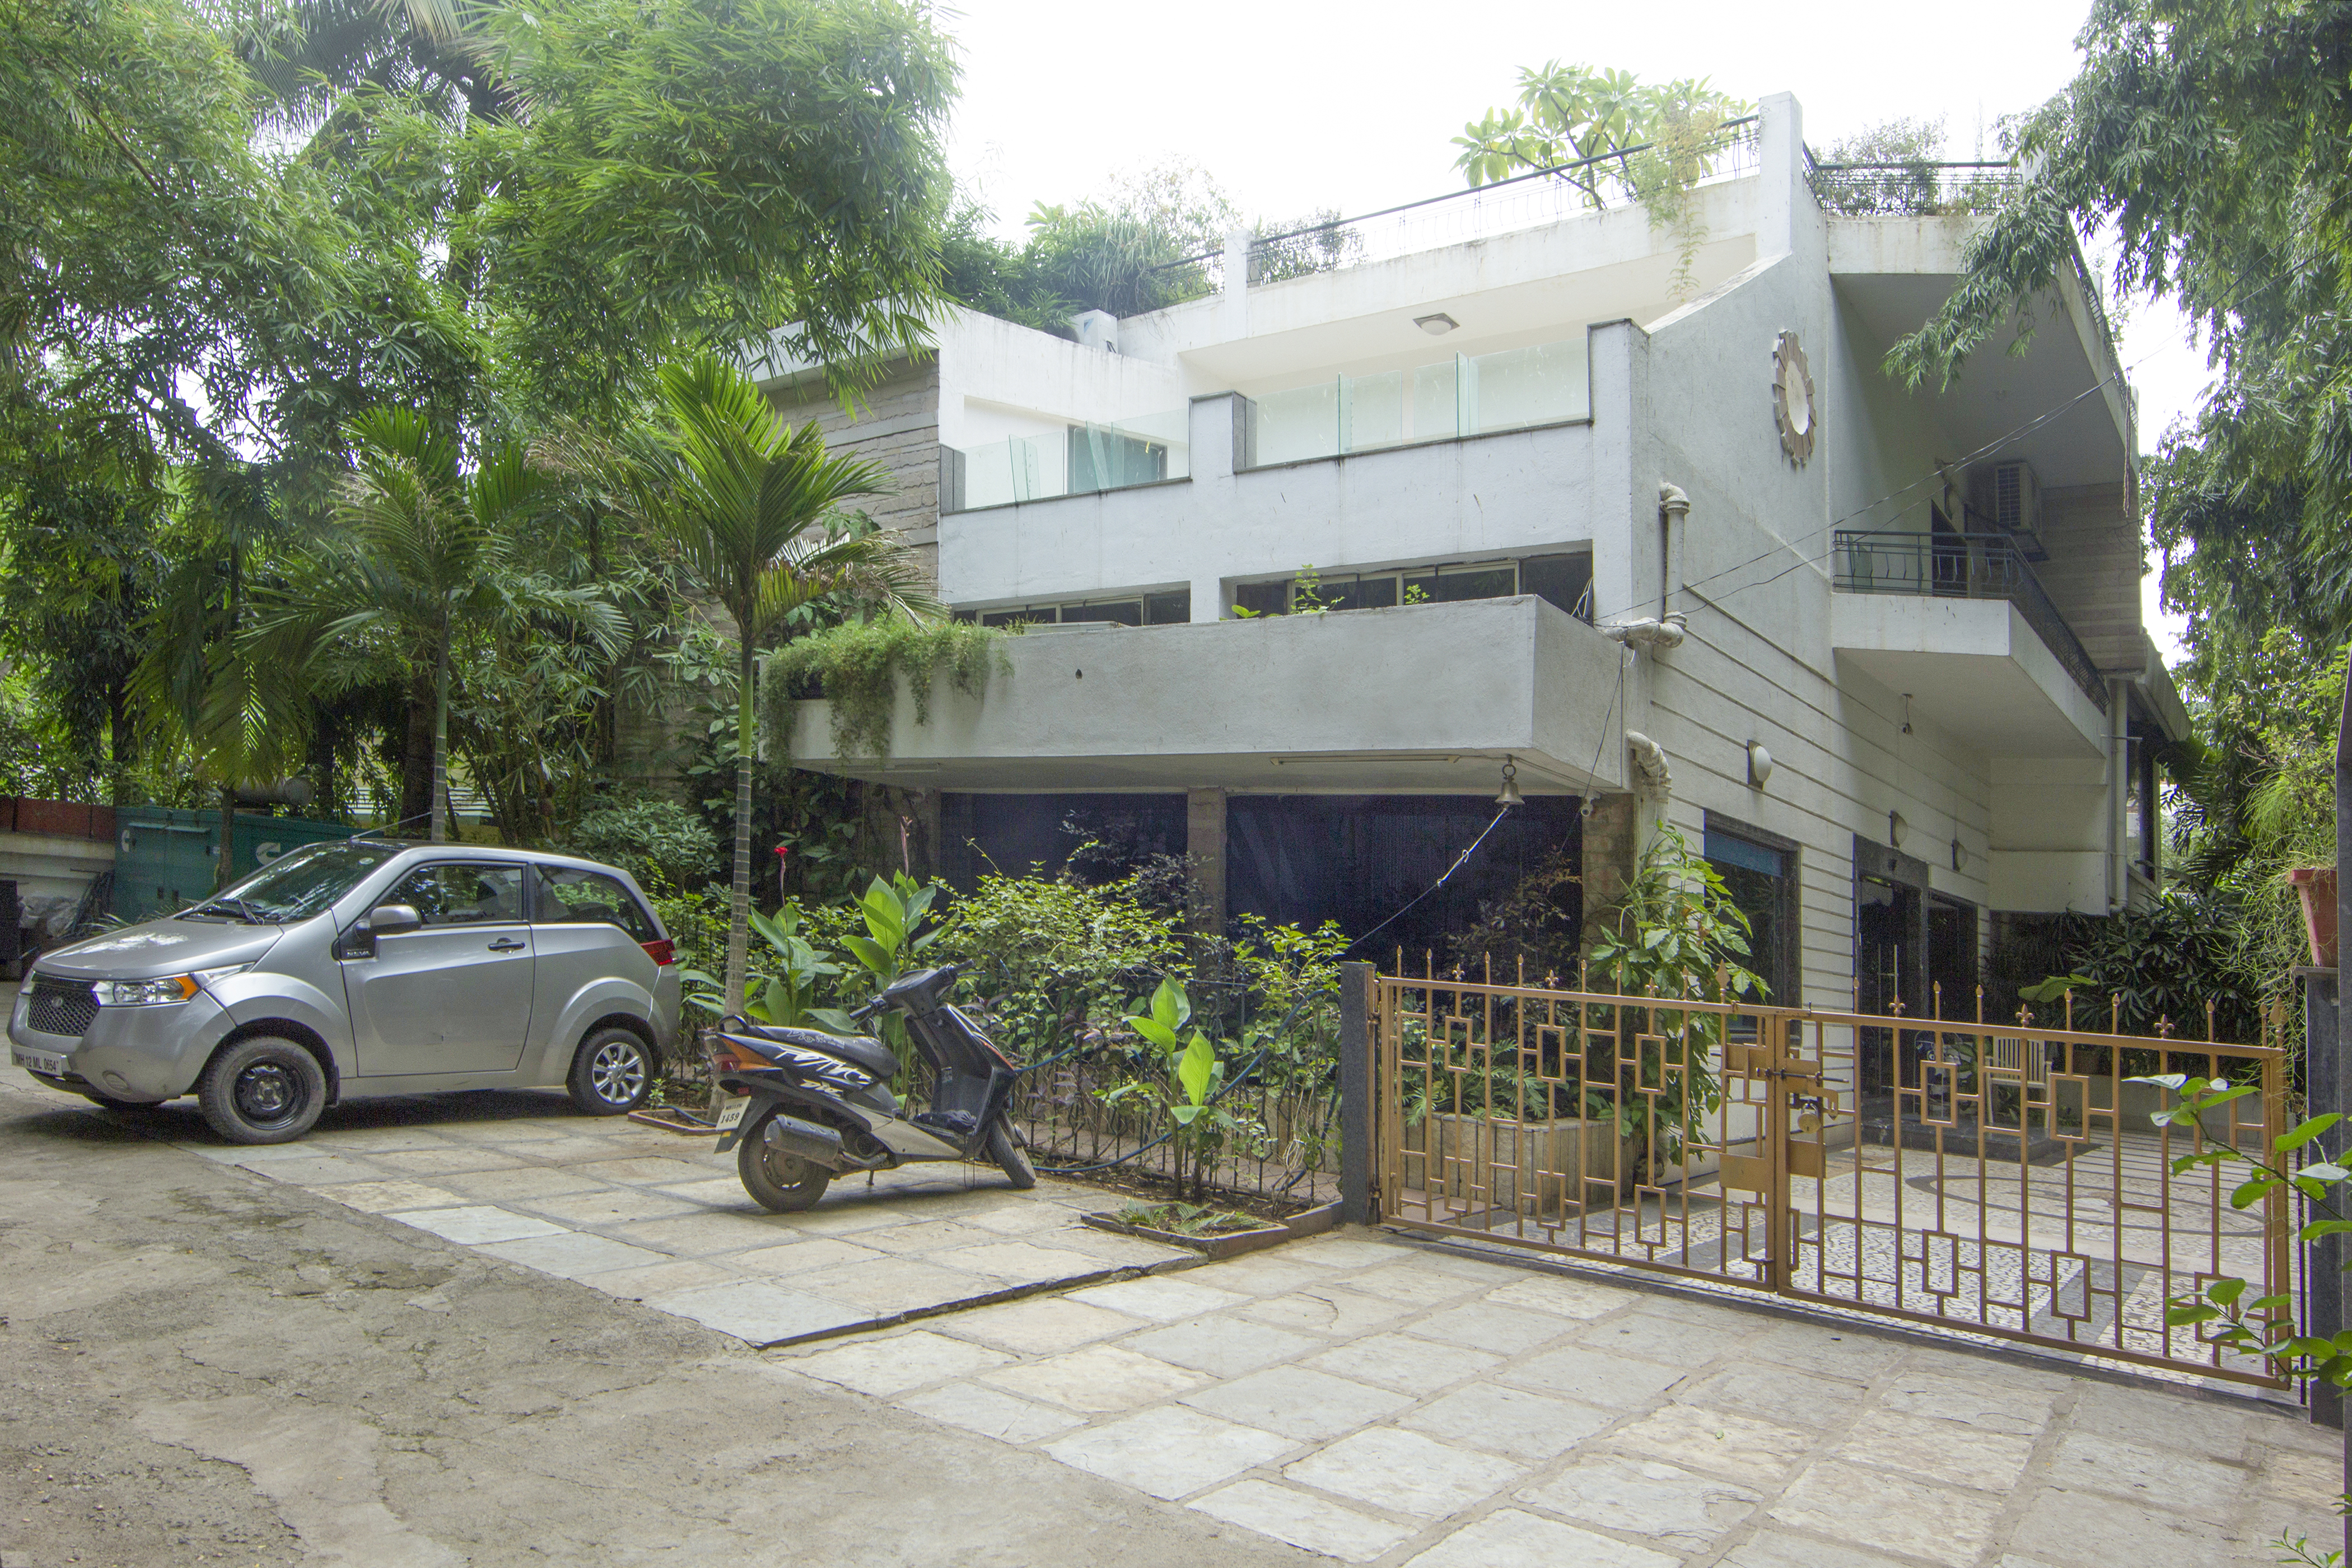 Jewelz 6 - Luxury Villa in Koregaon Park - Bungalows for Rent in Pune,  Maharashtra, India